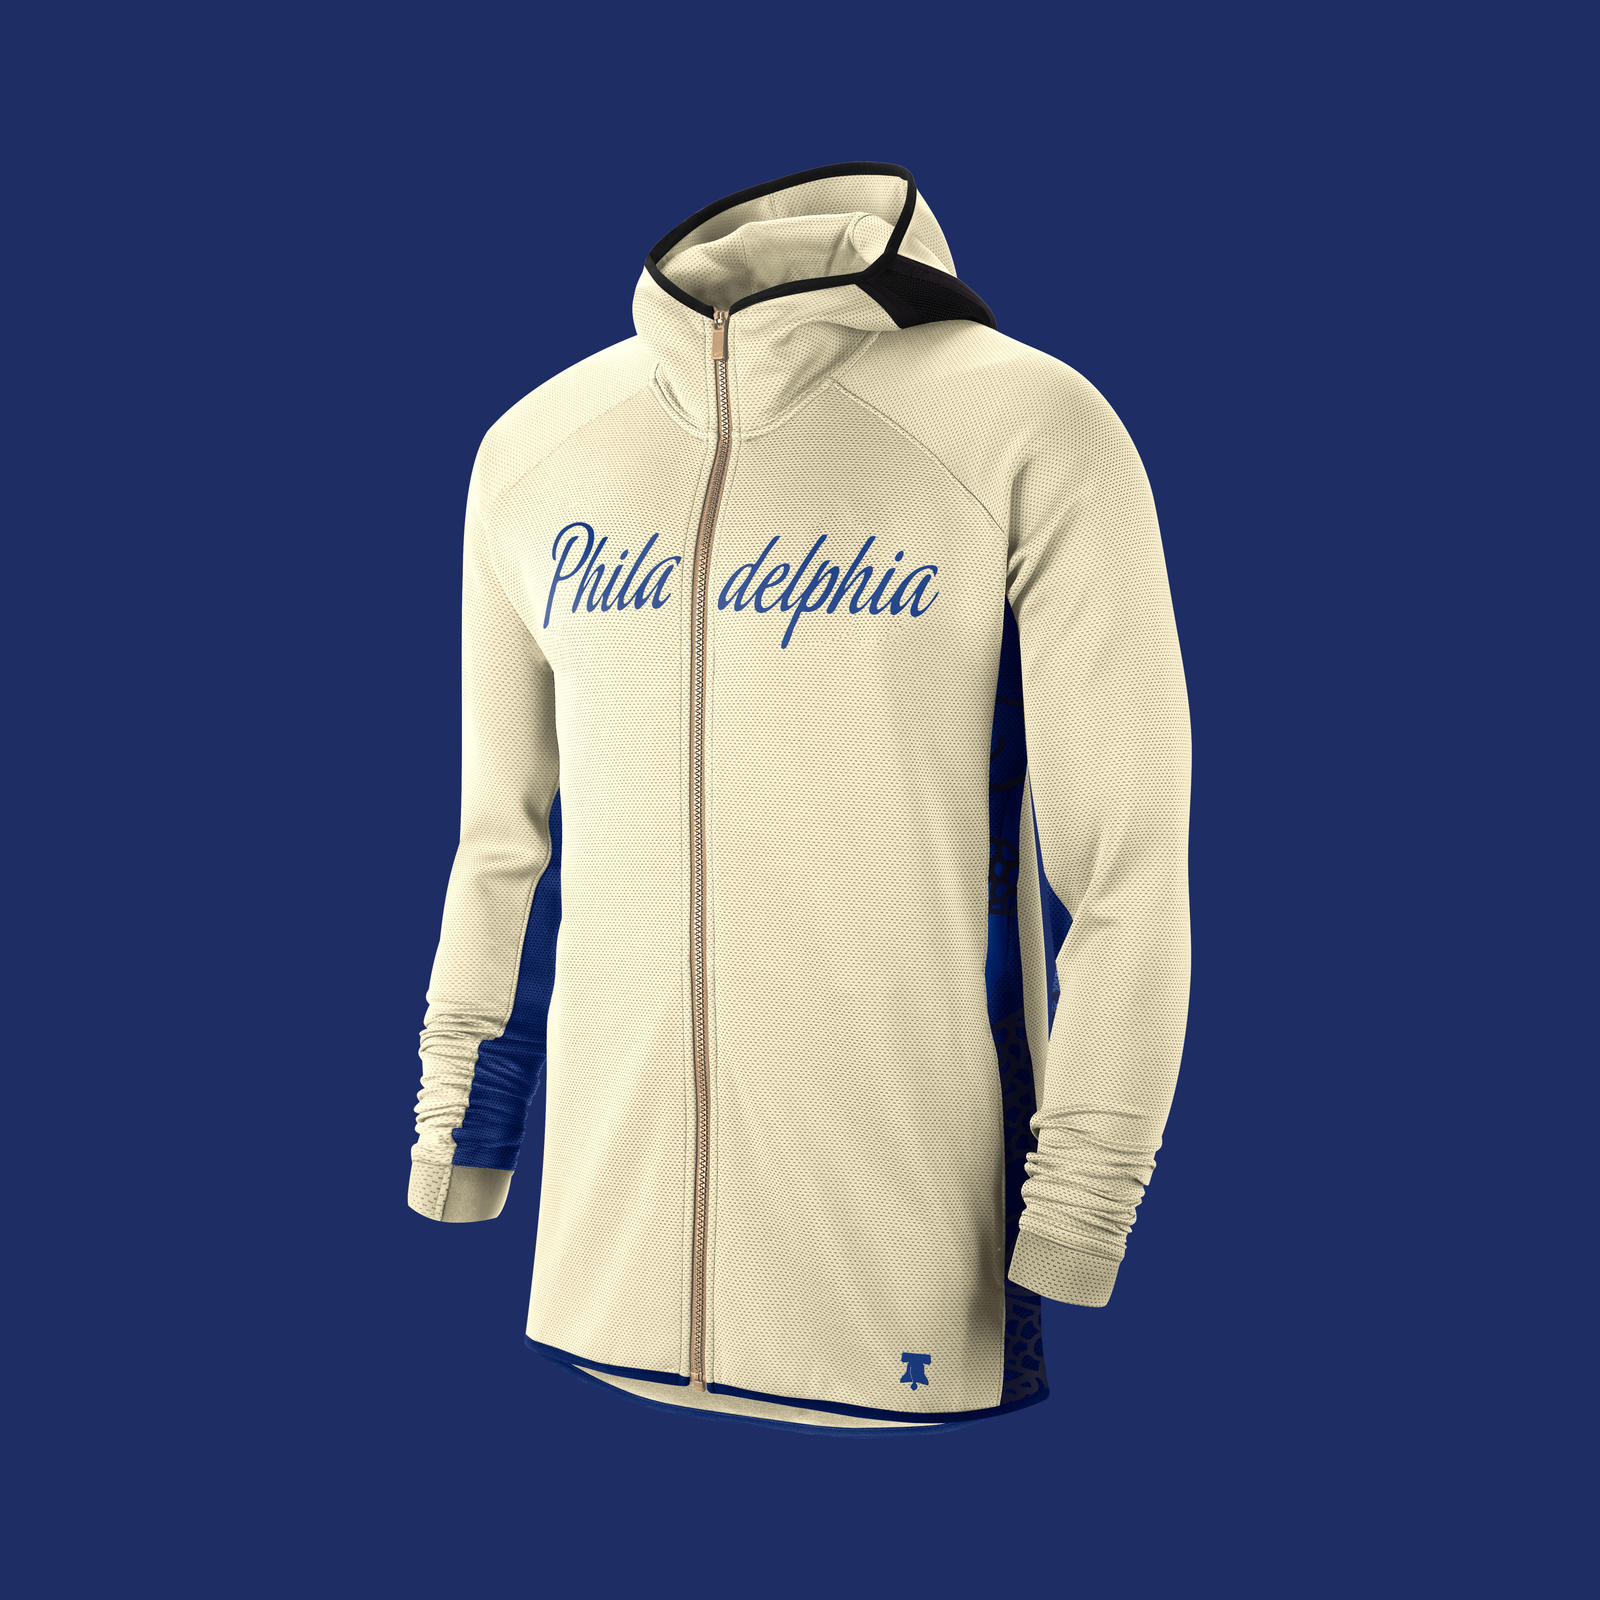 Nike NBA Earned Edition Showtime Hoodies 2019-20 Official Images 32